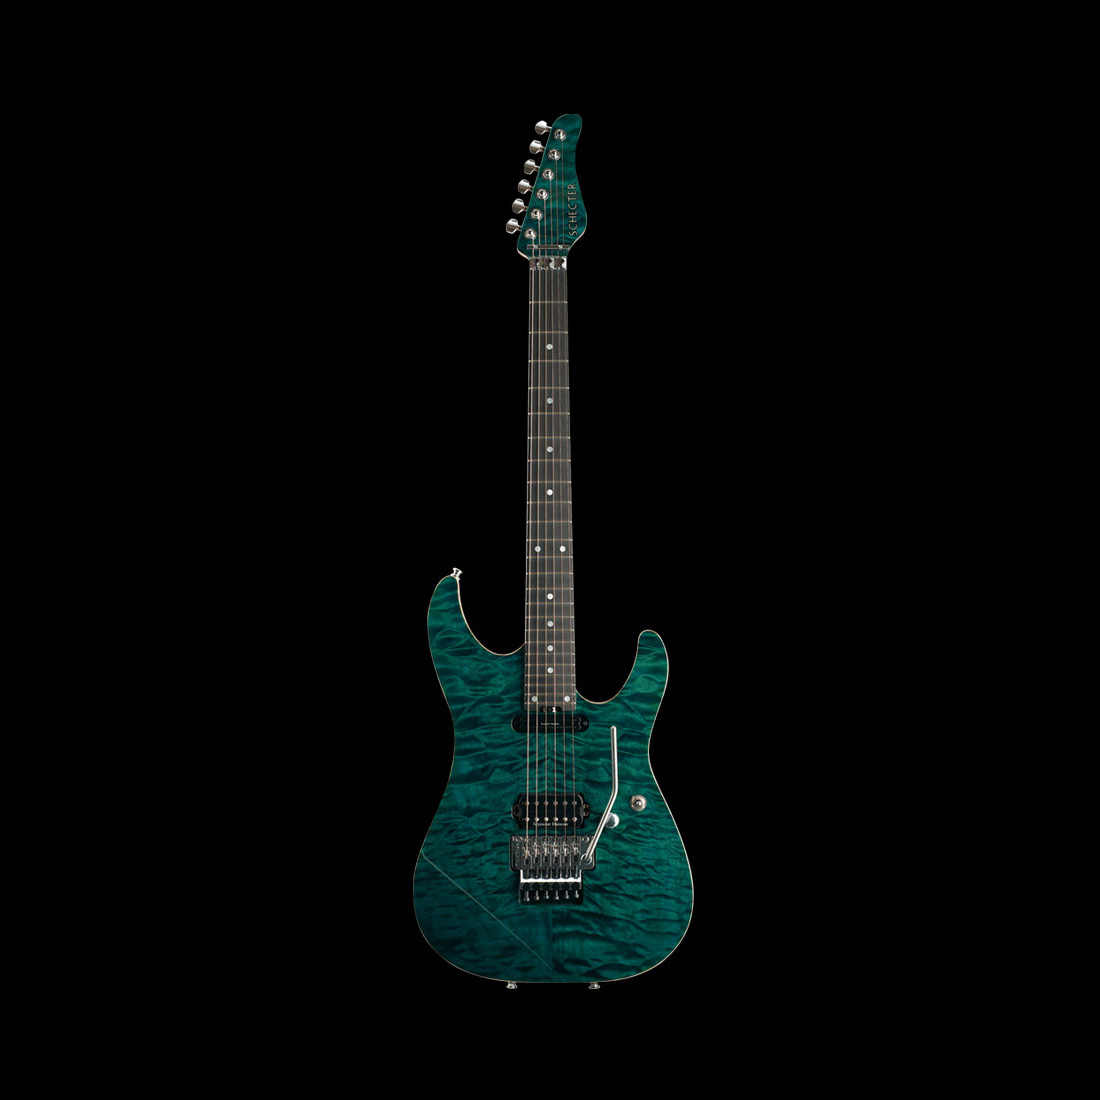 Schecter / AC-S6/SIG Black Turquoise シェクター エレキギター 小林信一シグネイチャー 《受注生産:予約受付中》